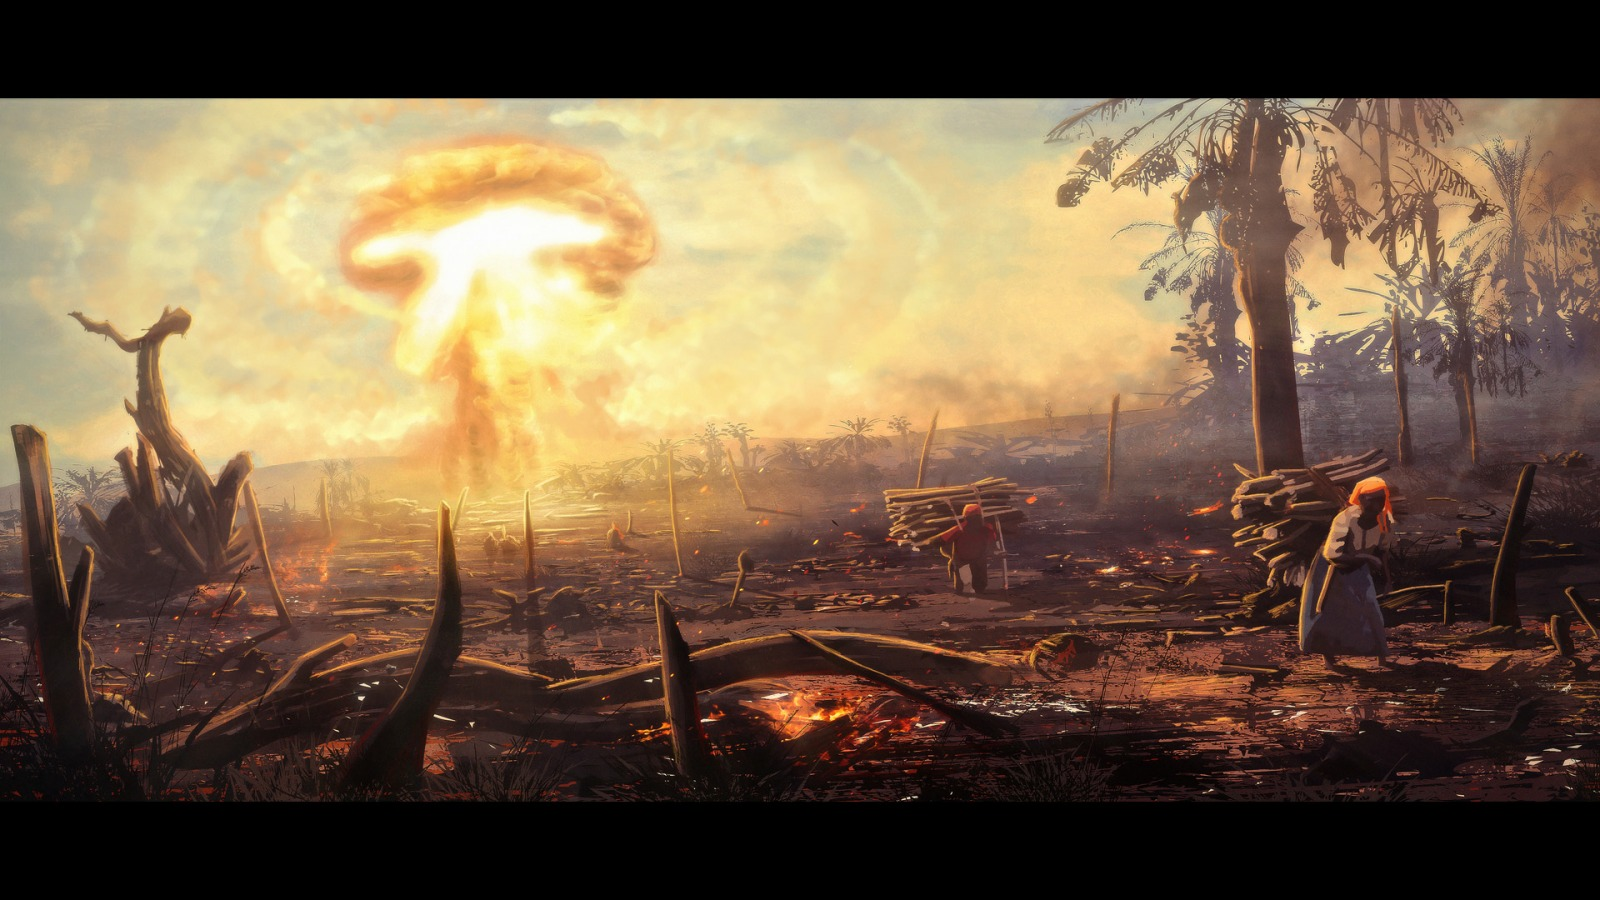 art of doom - doomsday destruction Wallpaper (31115232 ...